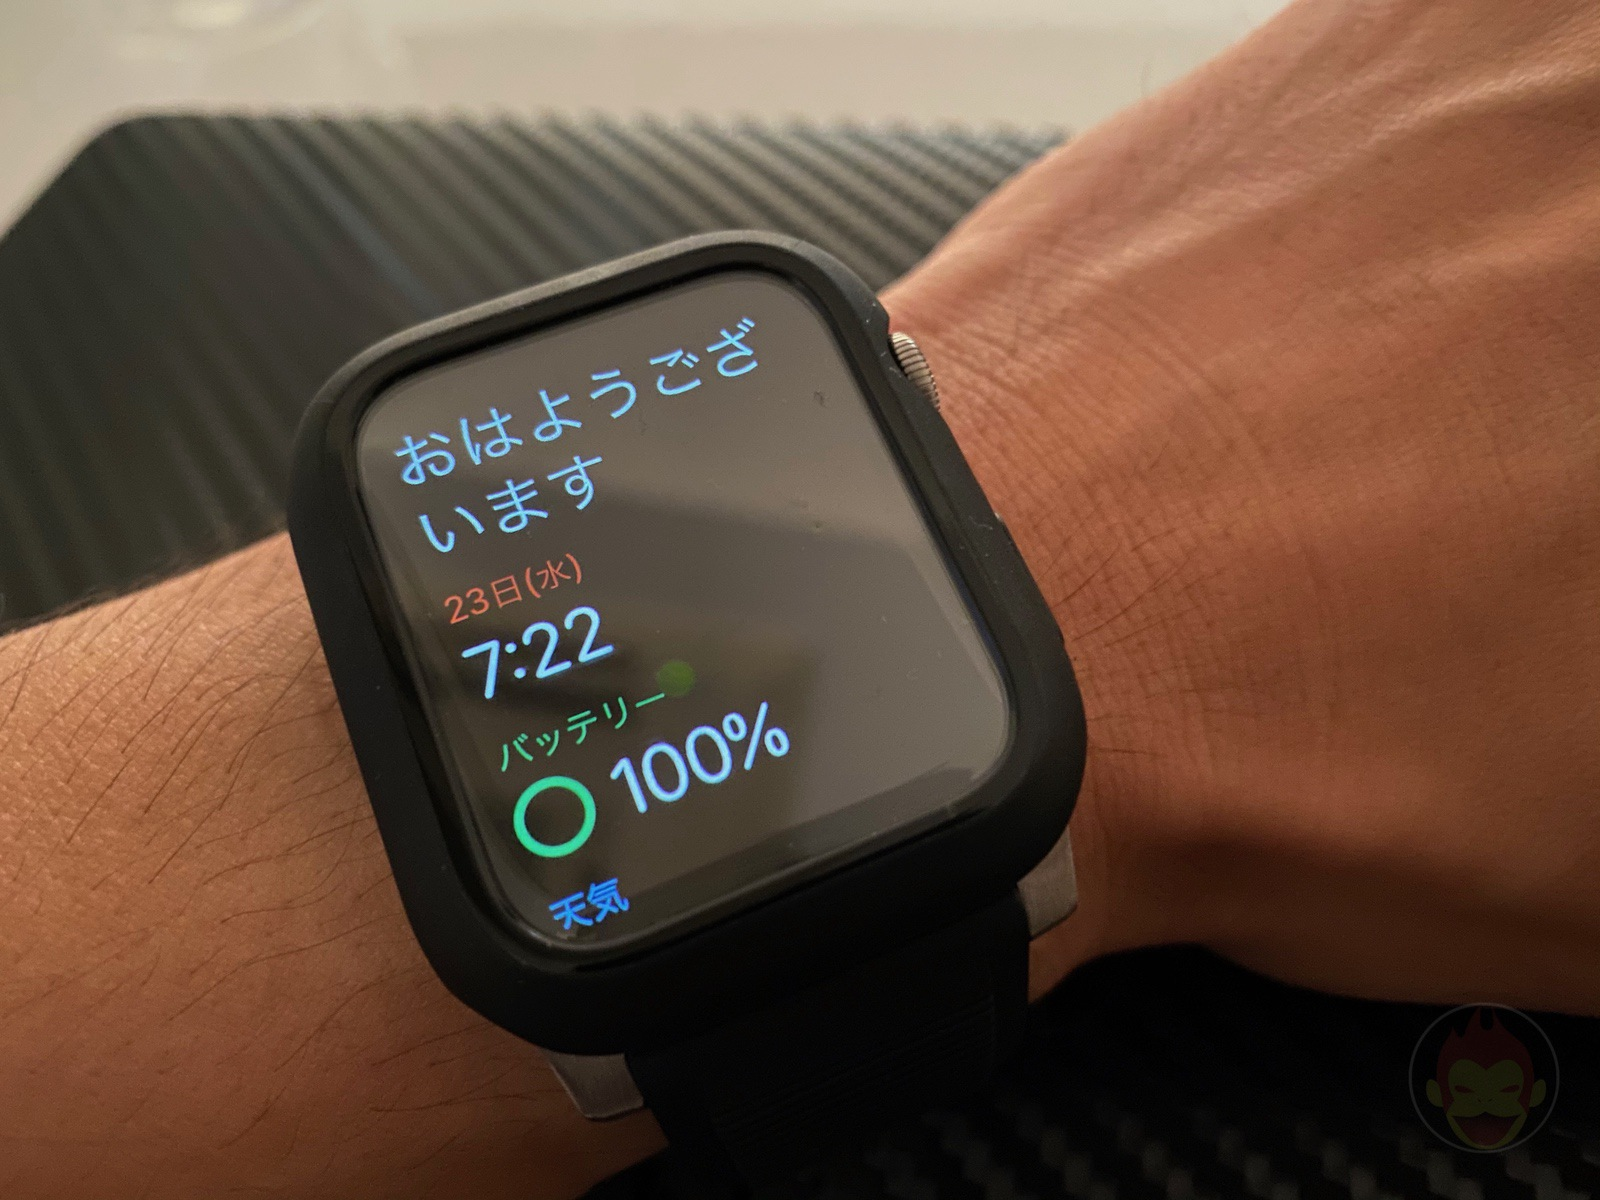 AppleWatchSeries6 With AODisplay ON 09